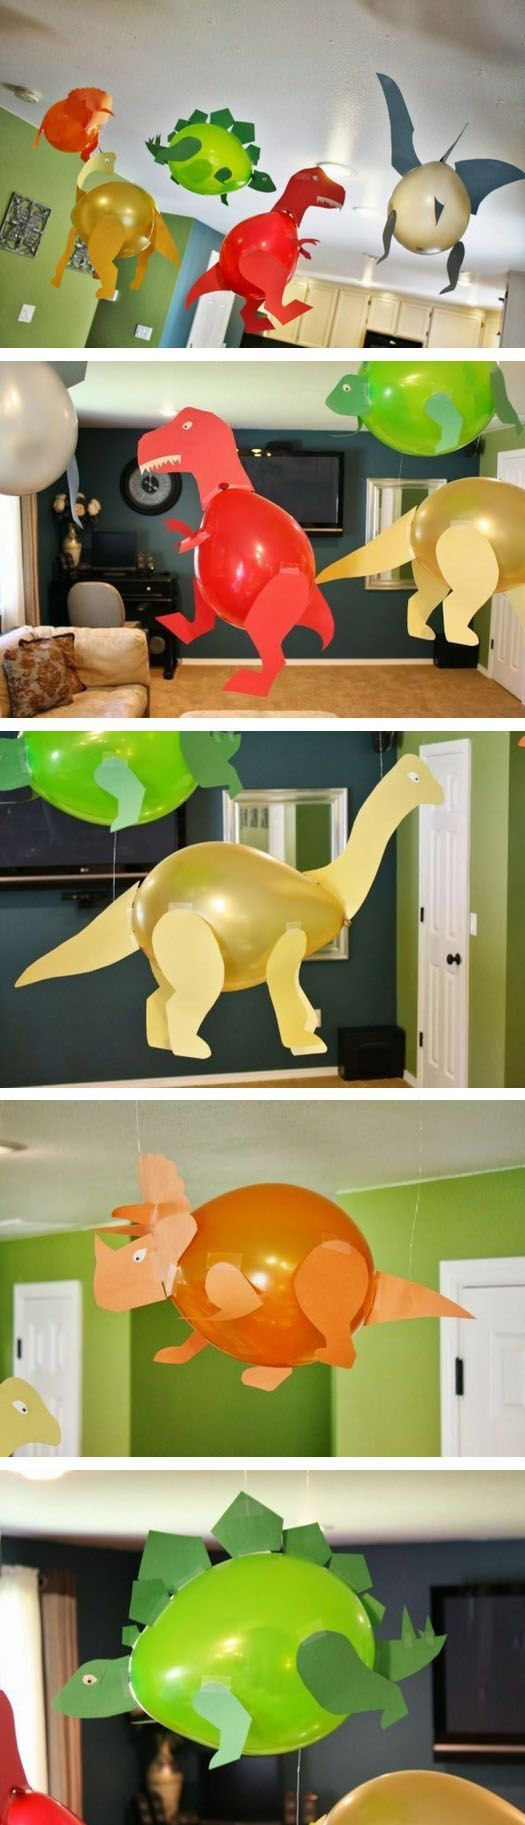 clothes shop online awesome Ballons ang paper is all you need to make home decor for kids party   art  inspi